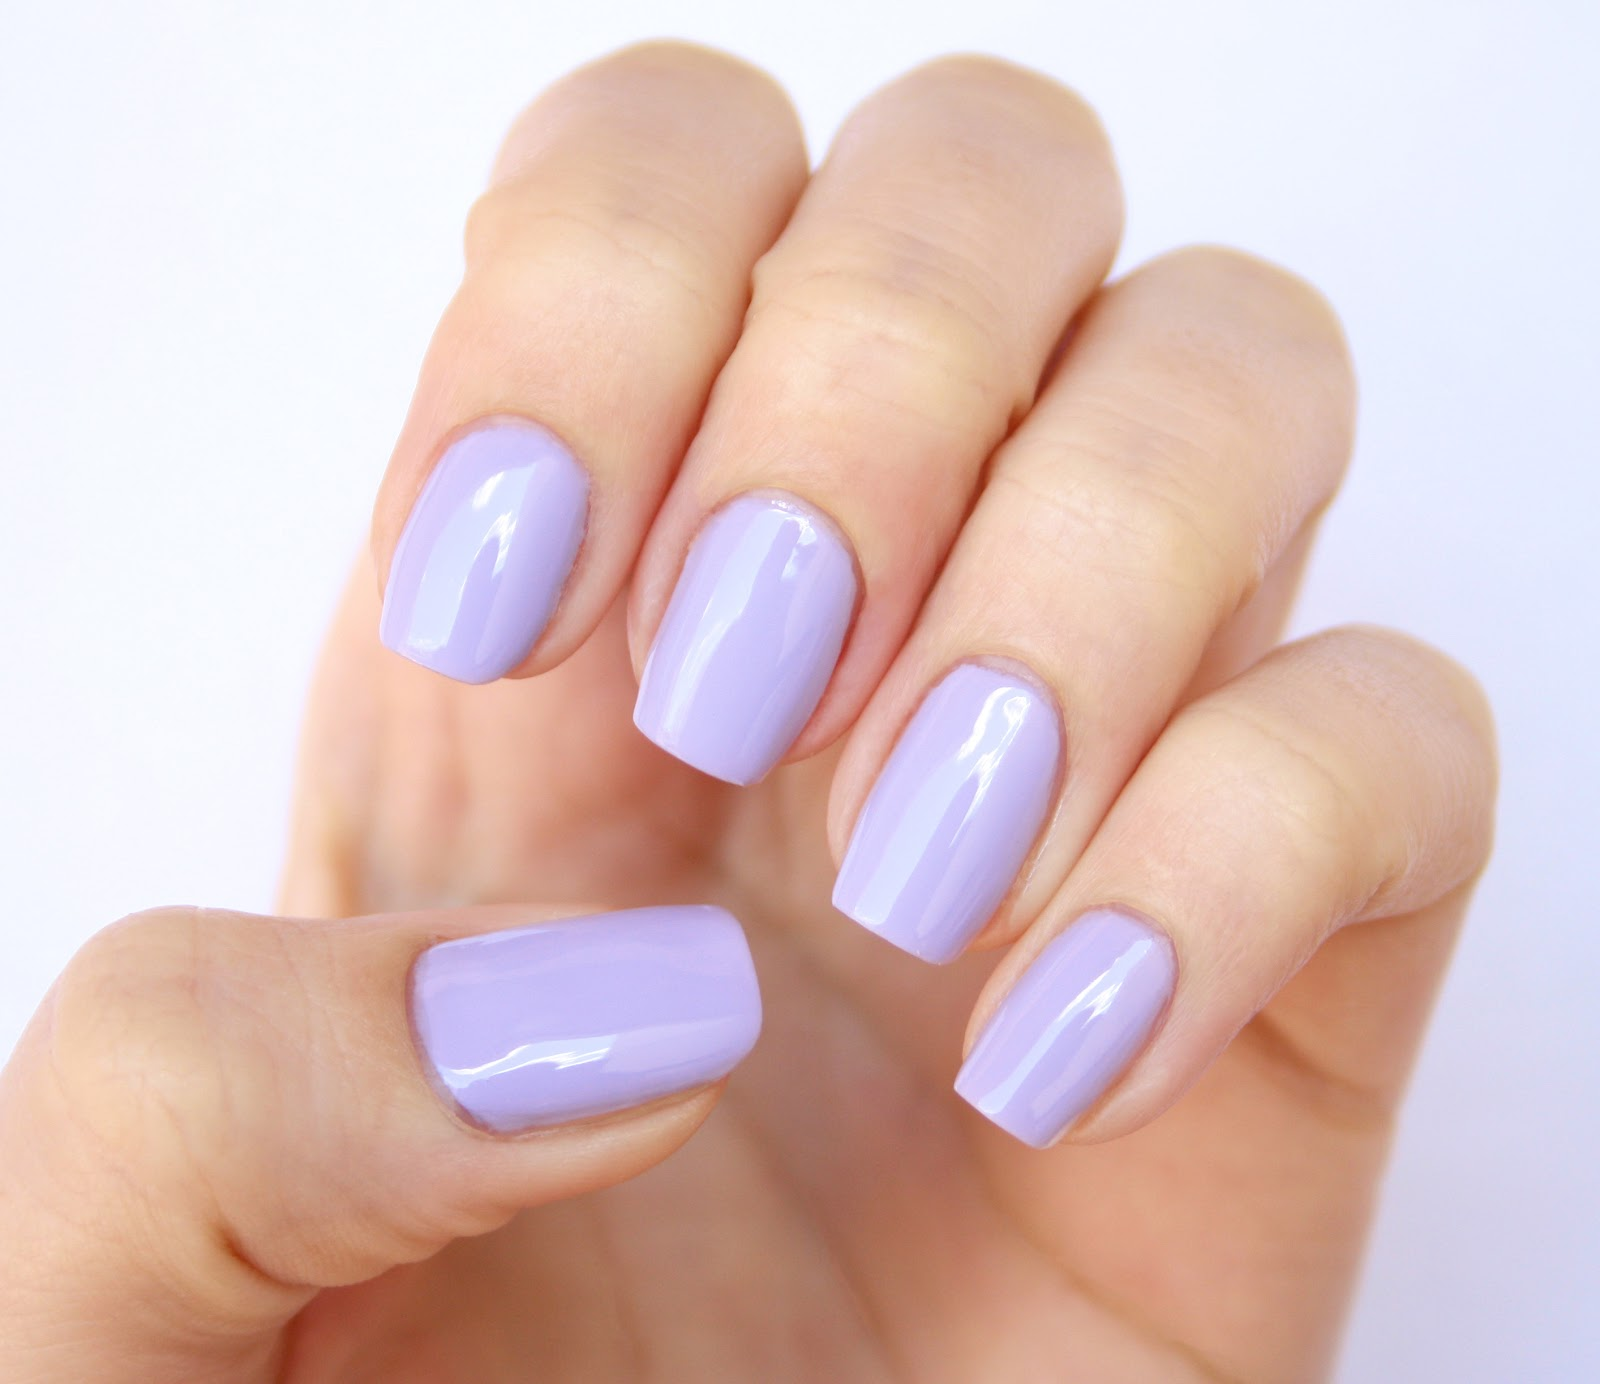 Essie Lilacism Nail Polish: Review and Photos | RosyChicc